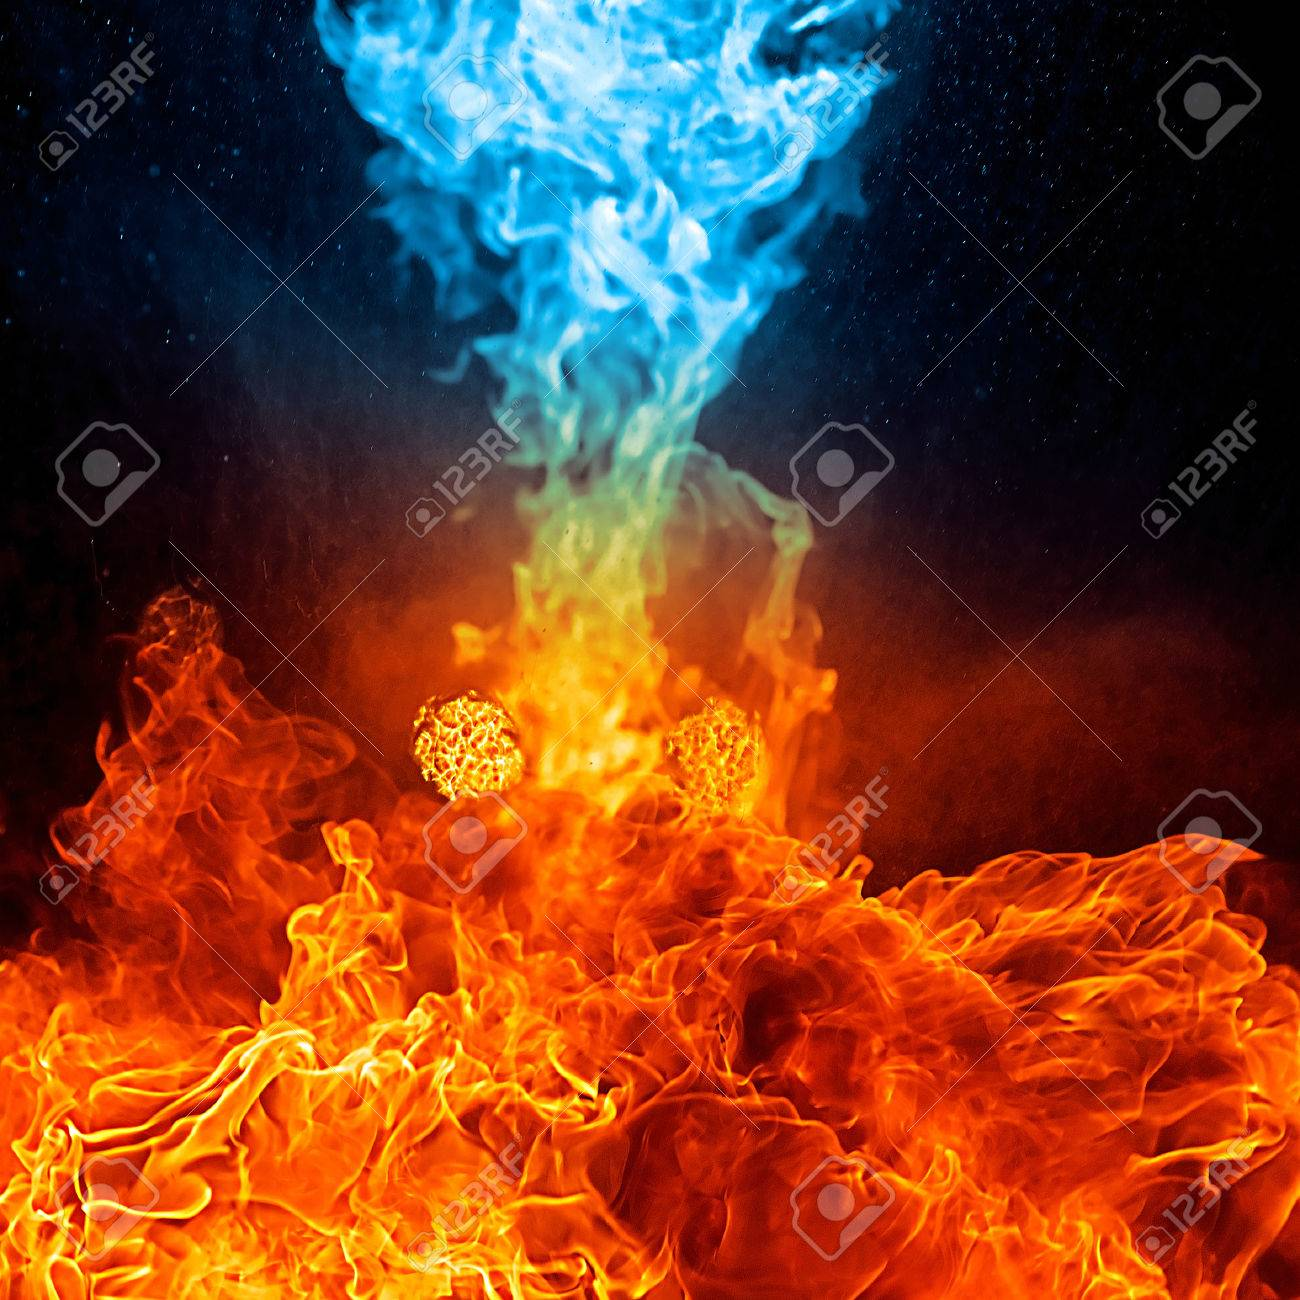 1300x1300 - Red and Blue Fire 19